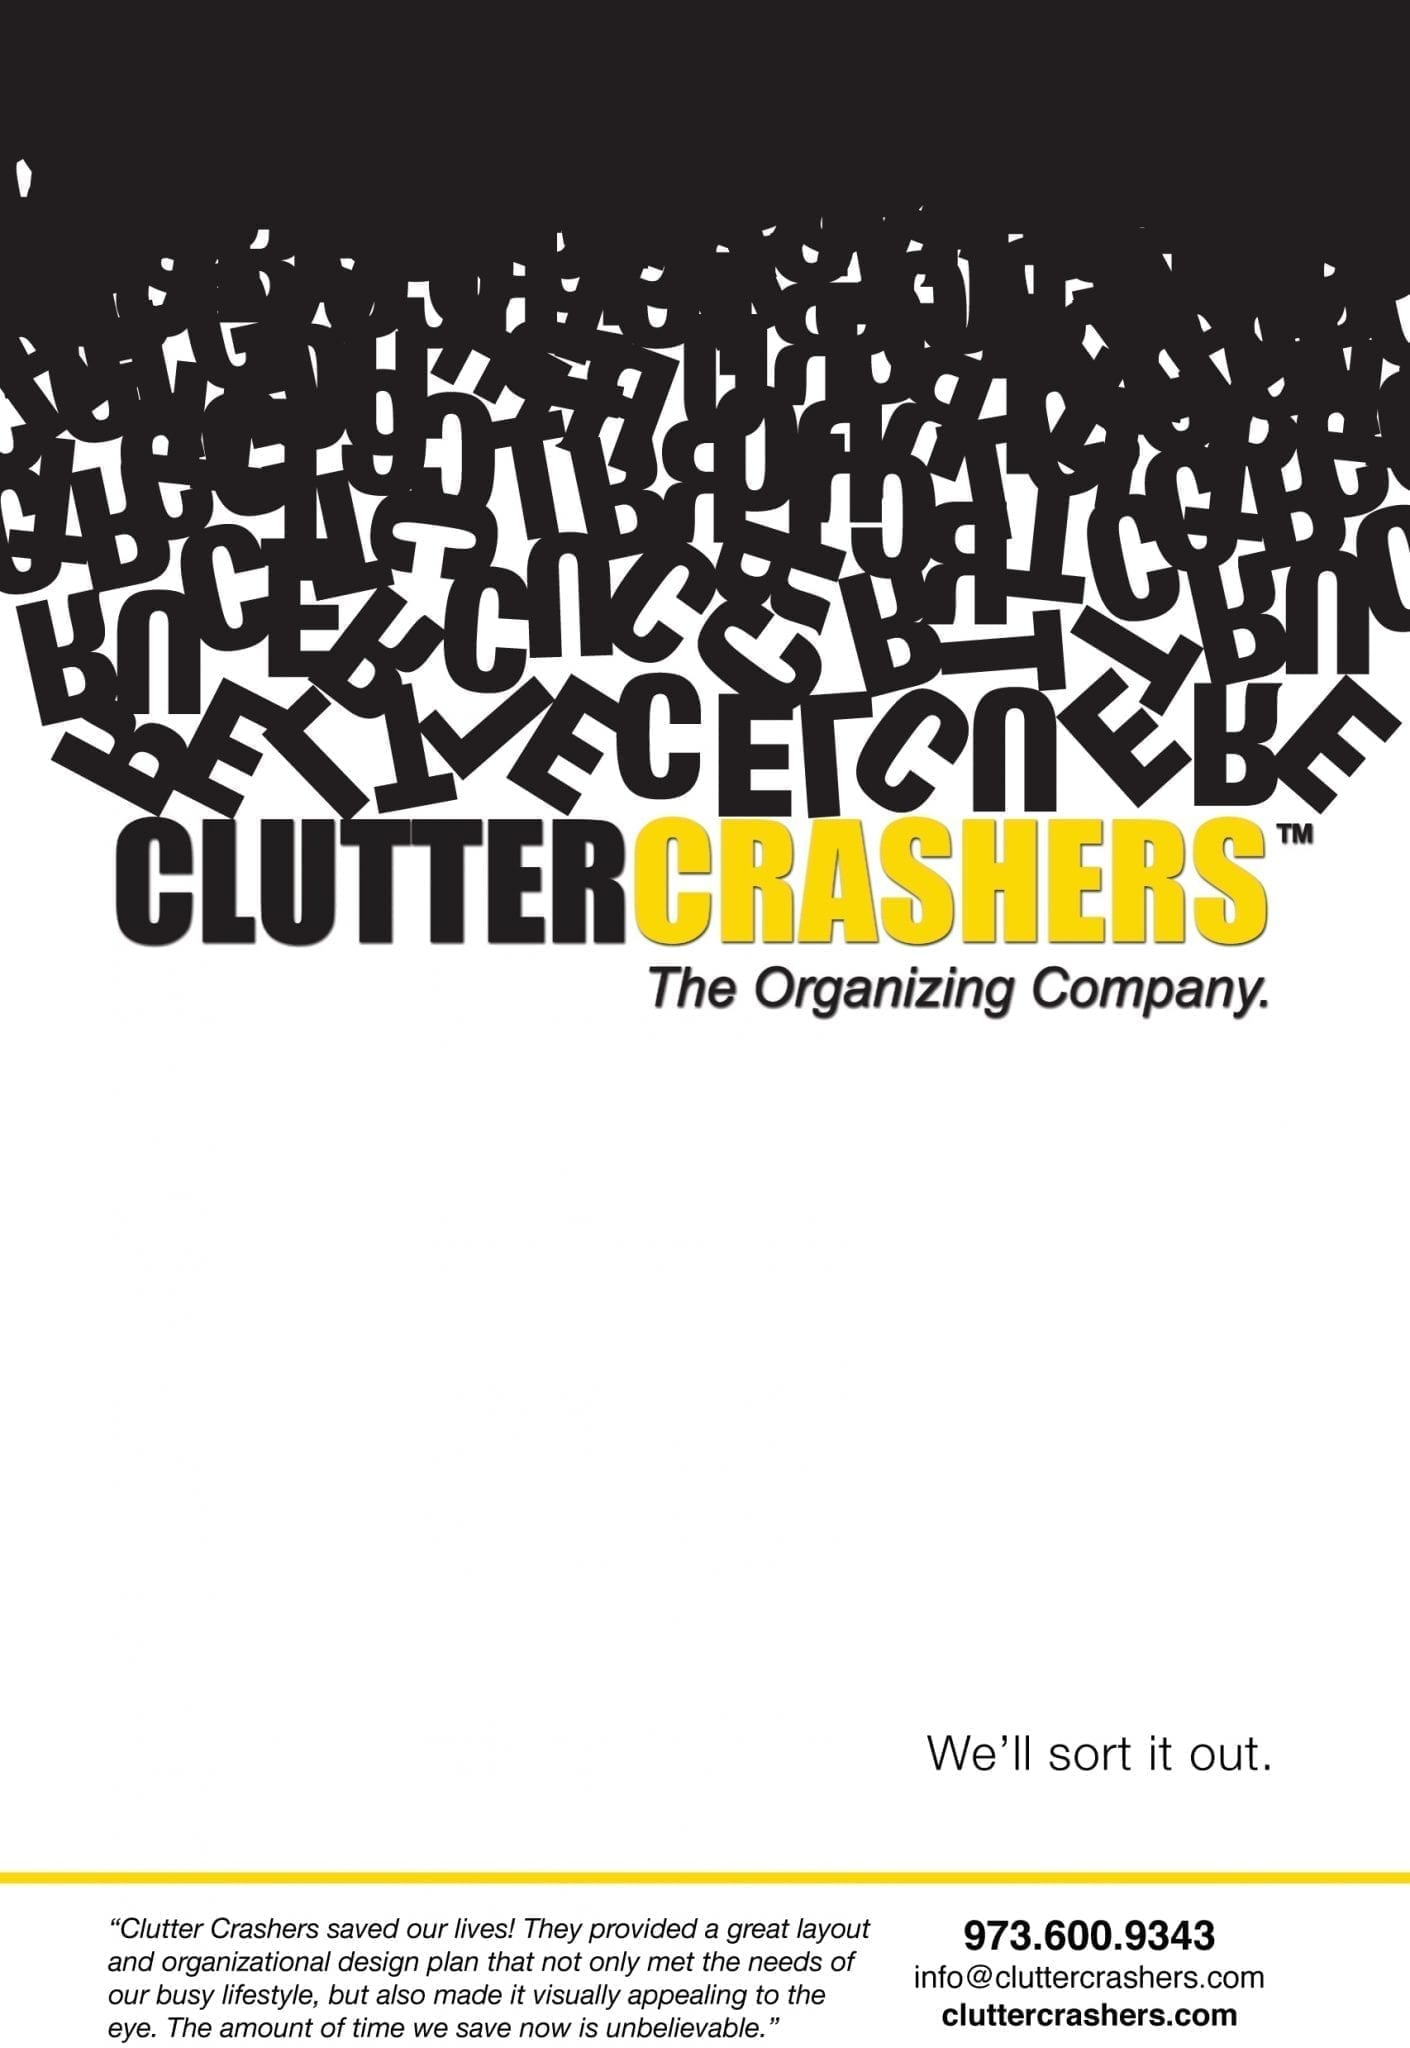 Clutter Crashers